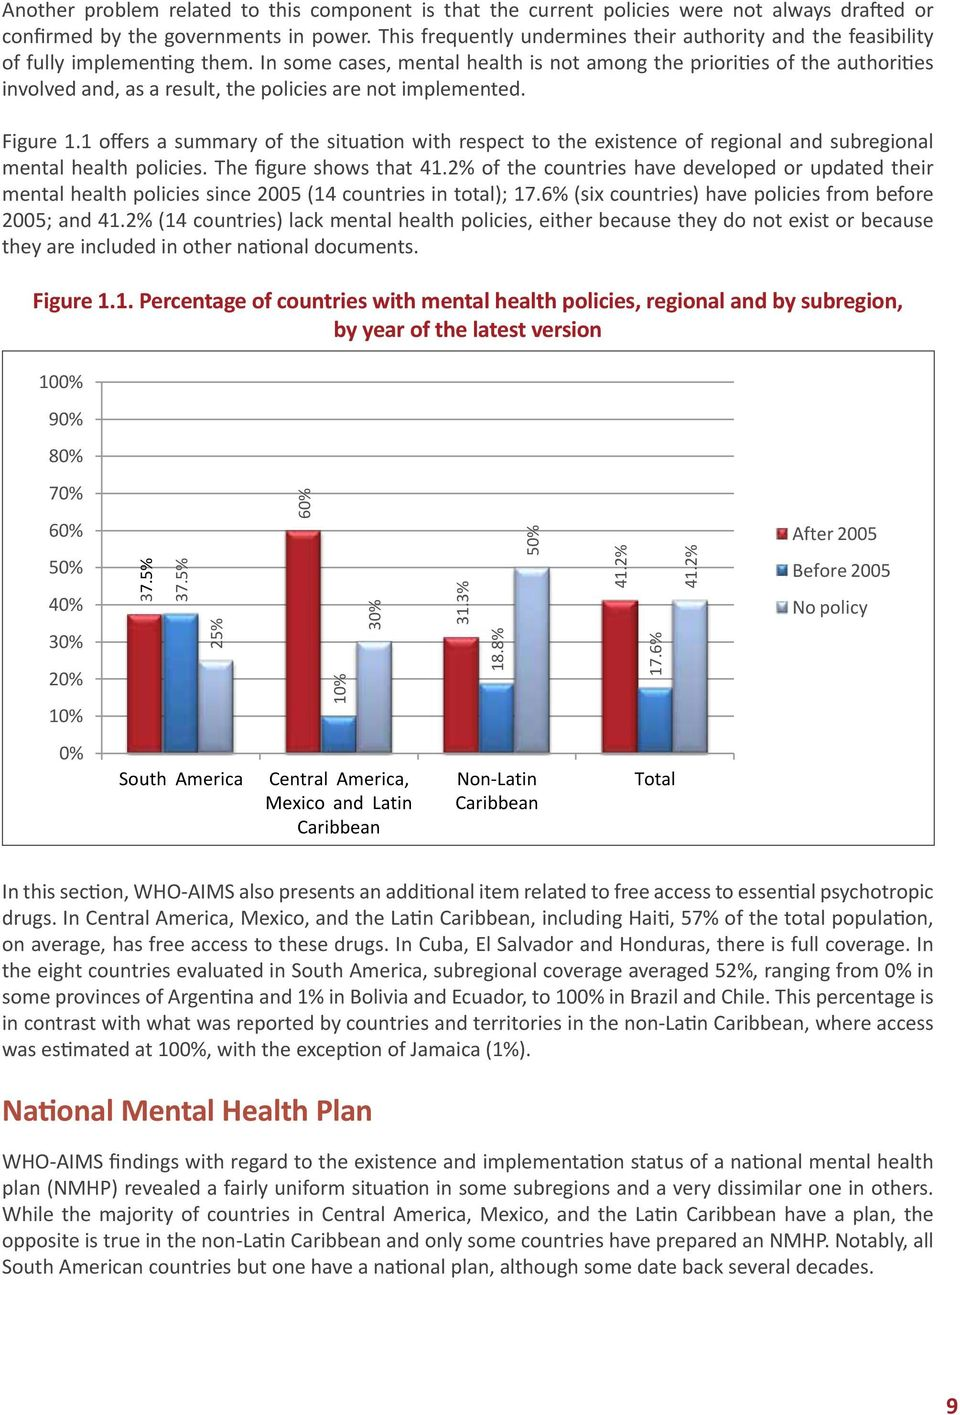 In some cases, mental health is not among the priorities of the authorities involved and, as a result, the policies are not implemented. Figure 1.